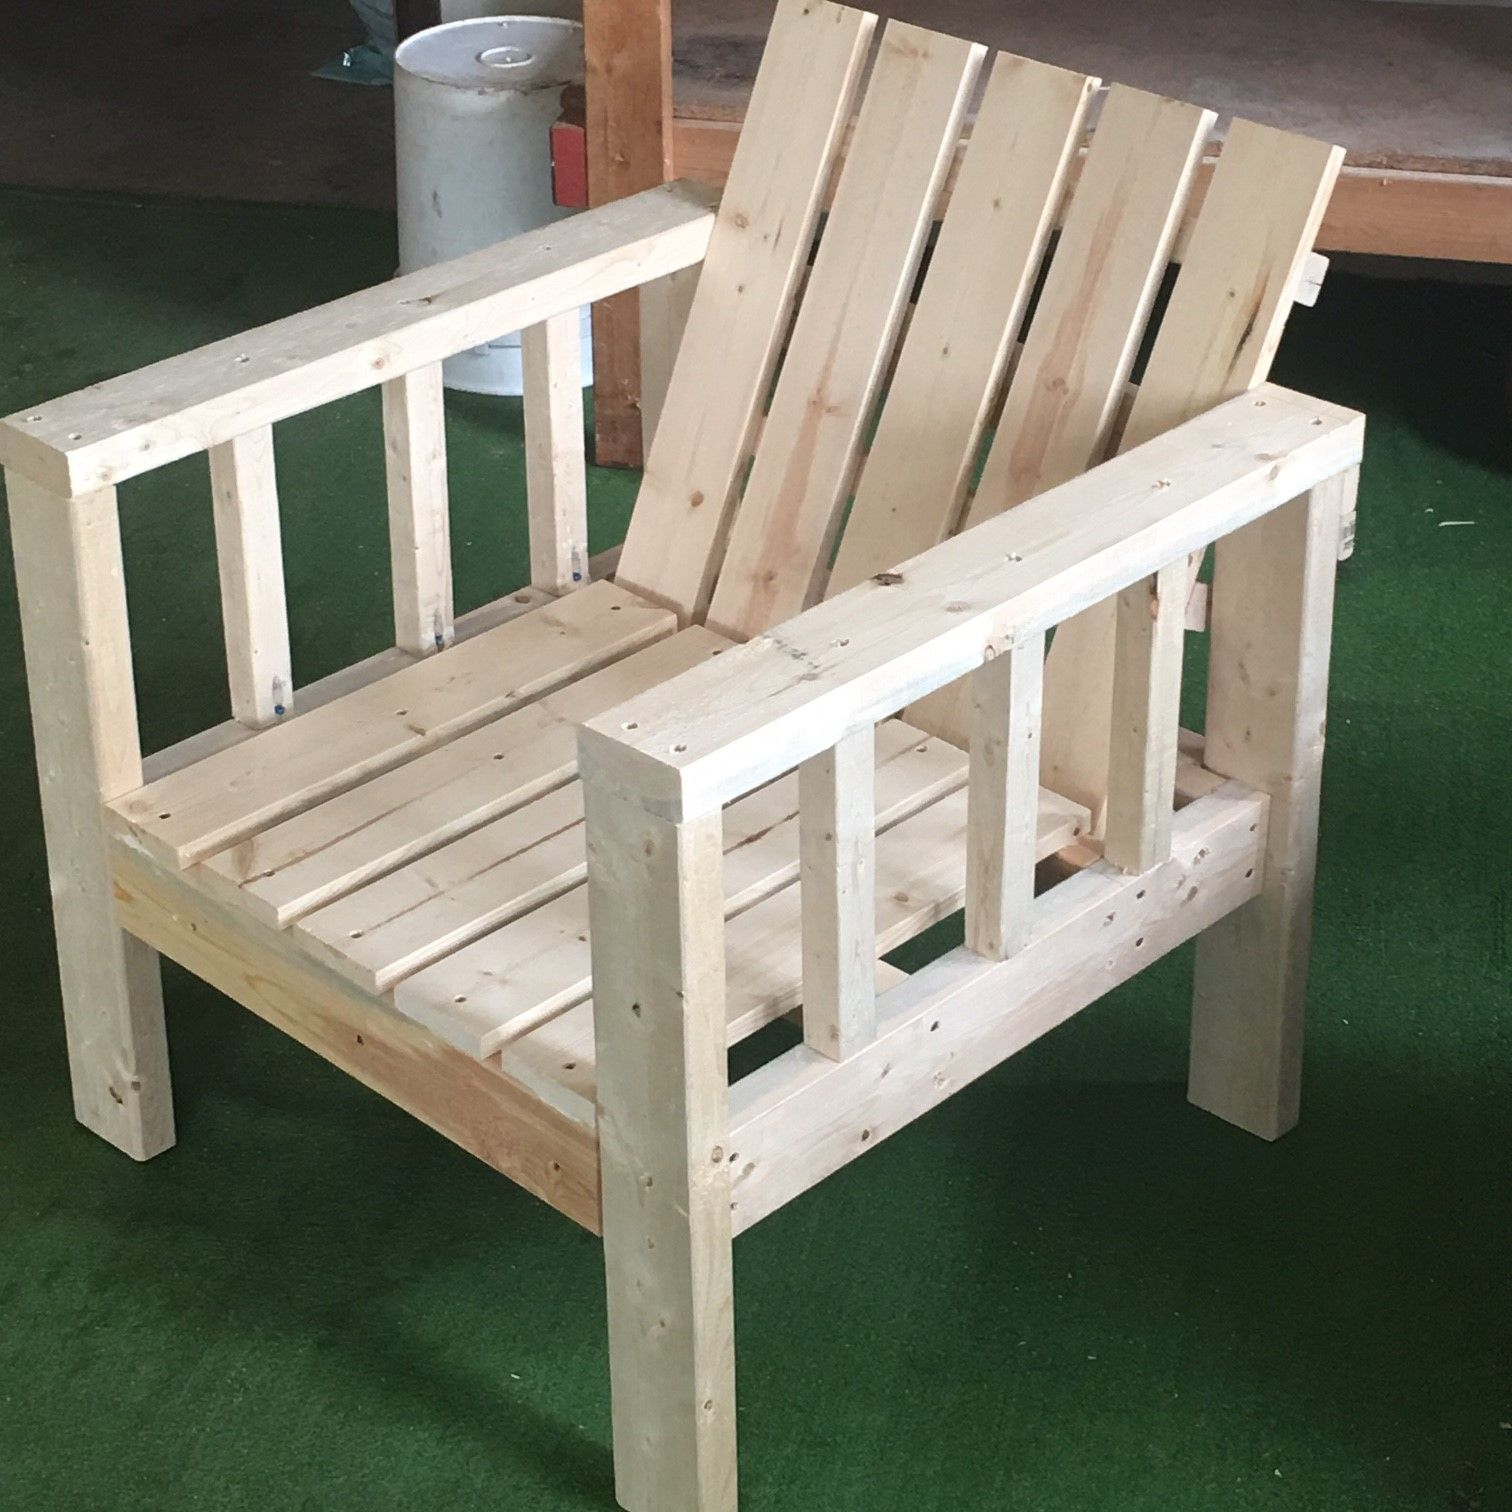 How to make a simple wooden chair - Let Me Begin With This Customized Wood Pallet Room Chair As This Is Needed In Build A Simple